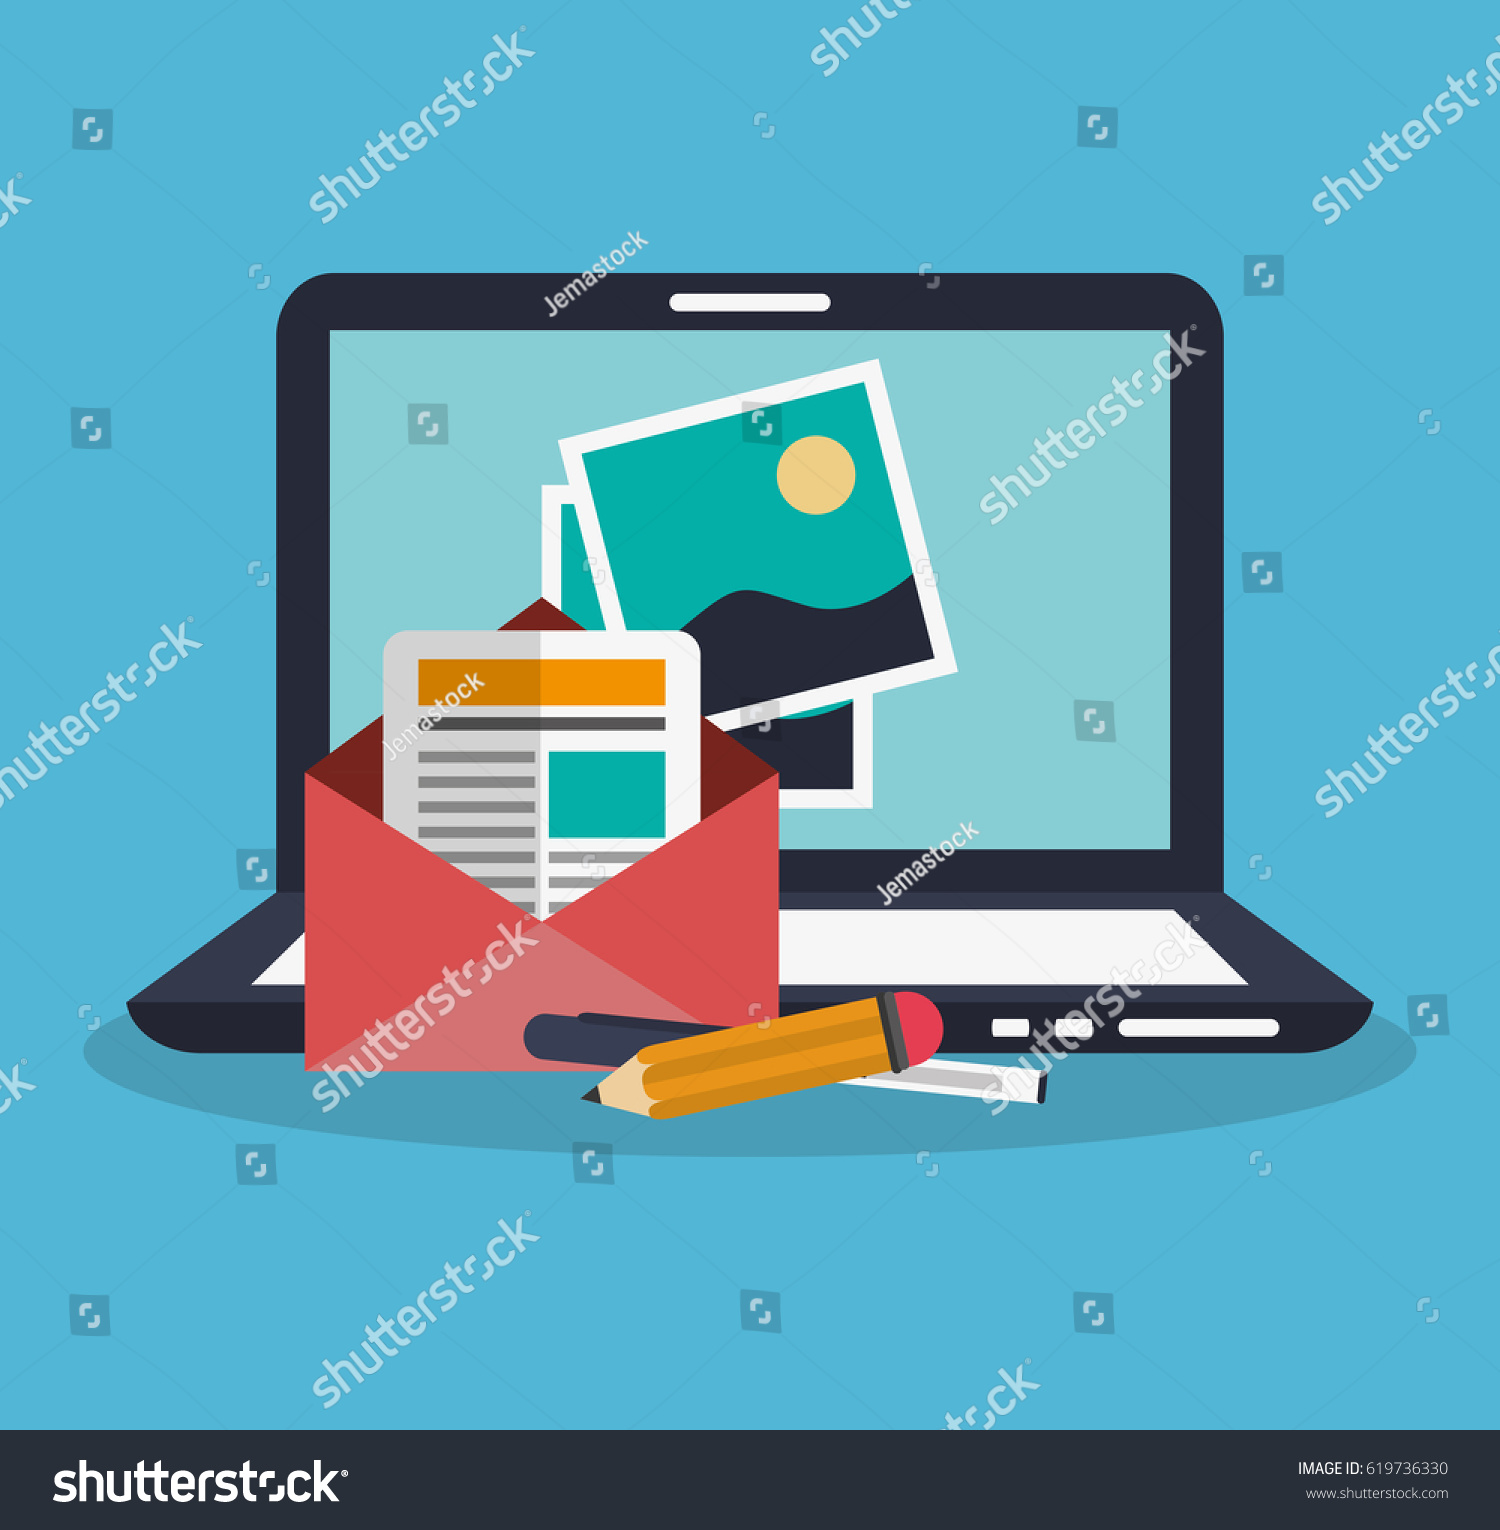 Computer Instant Messaging Related Icons Image Stock Vector